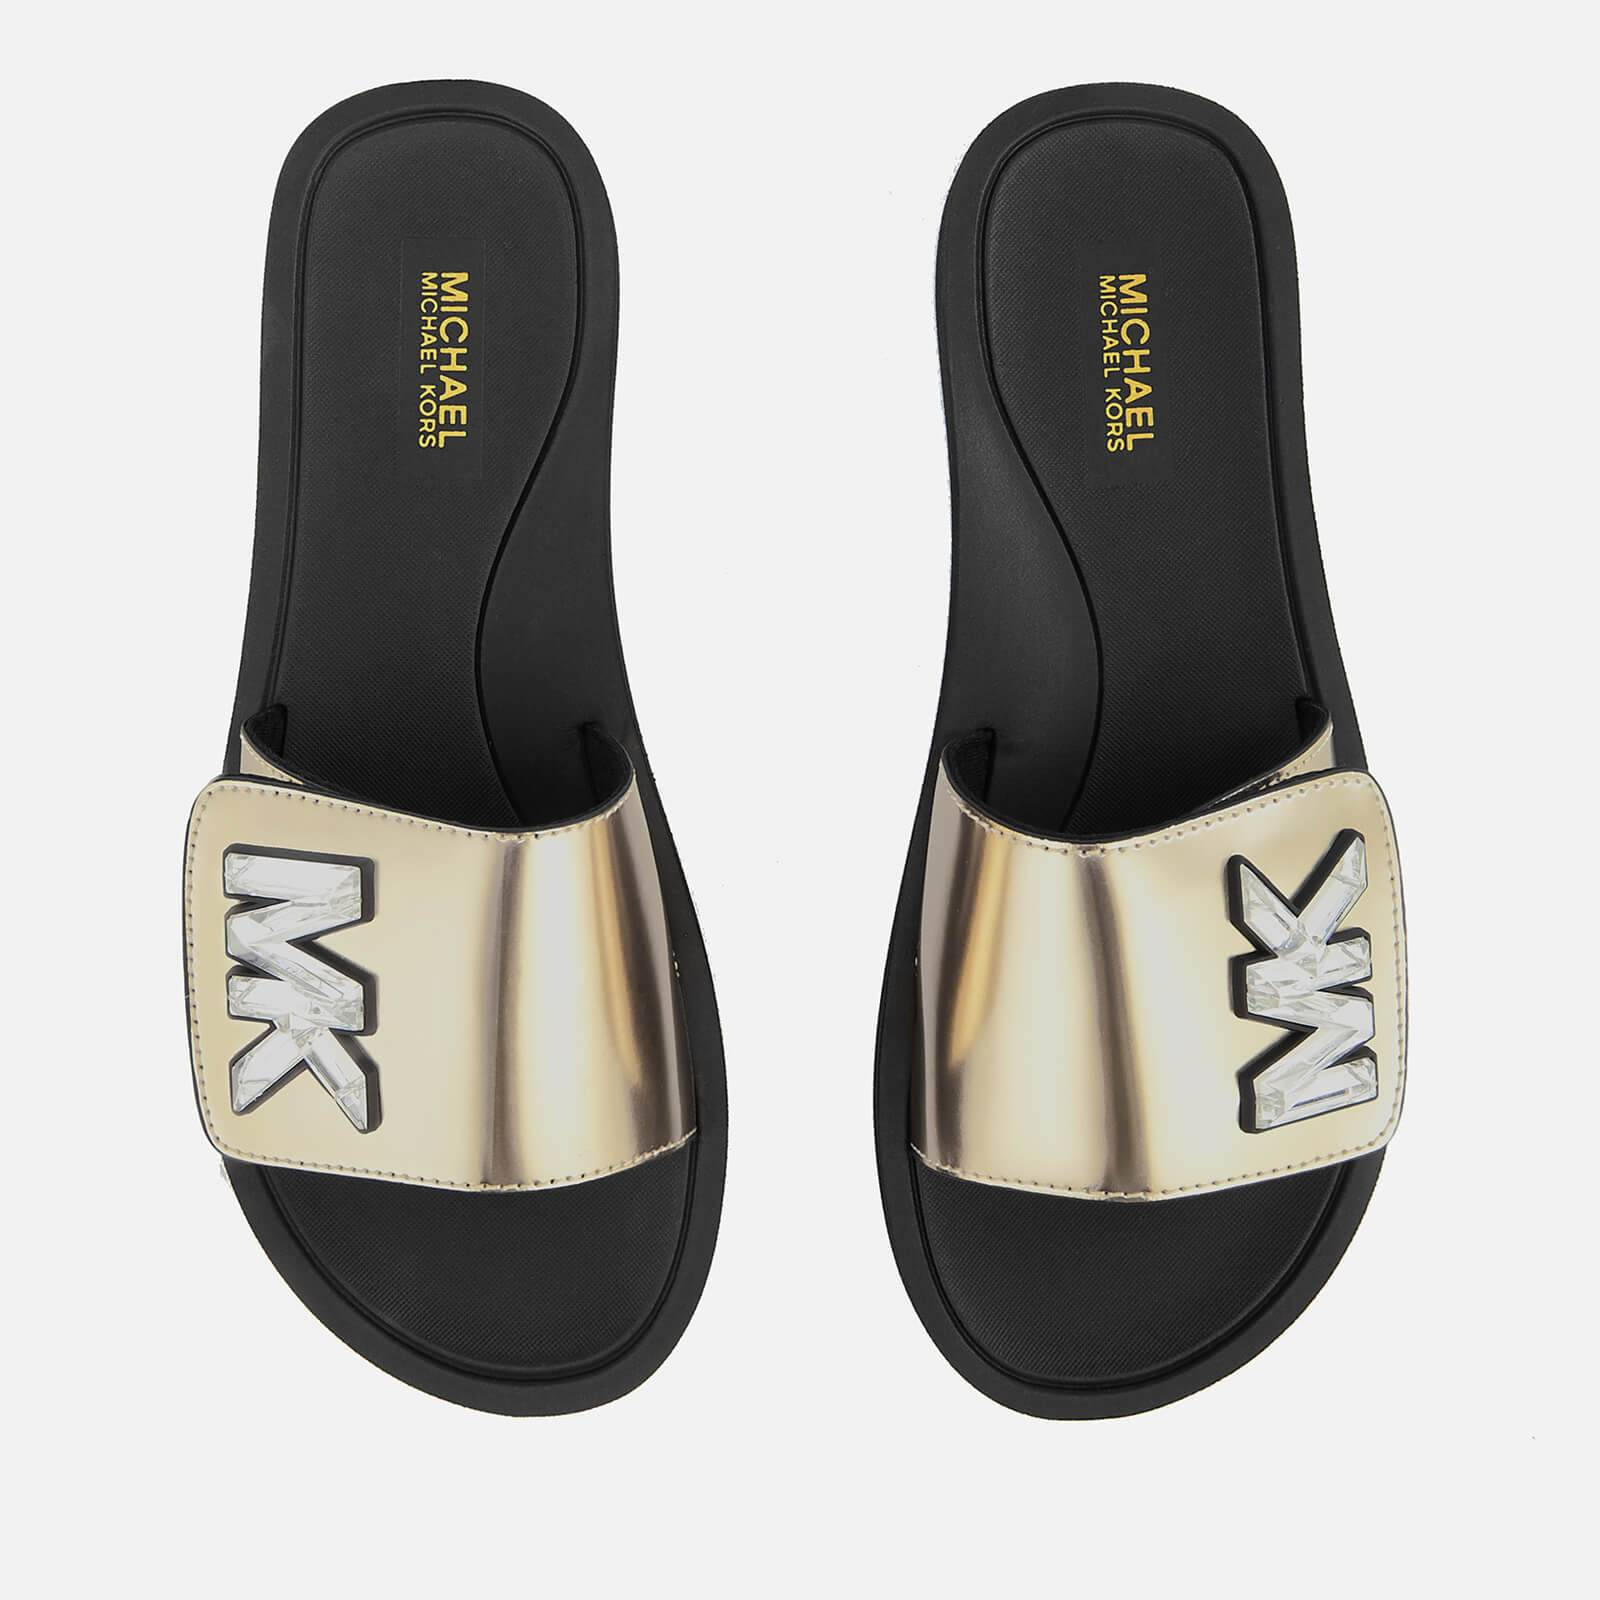 MICHAEL MICHAEL KORS Women's MK Slide Sandals - Pale Gold - UK 7/US 10 - Gold